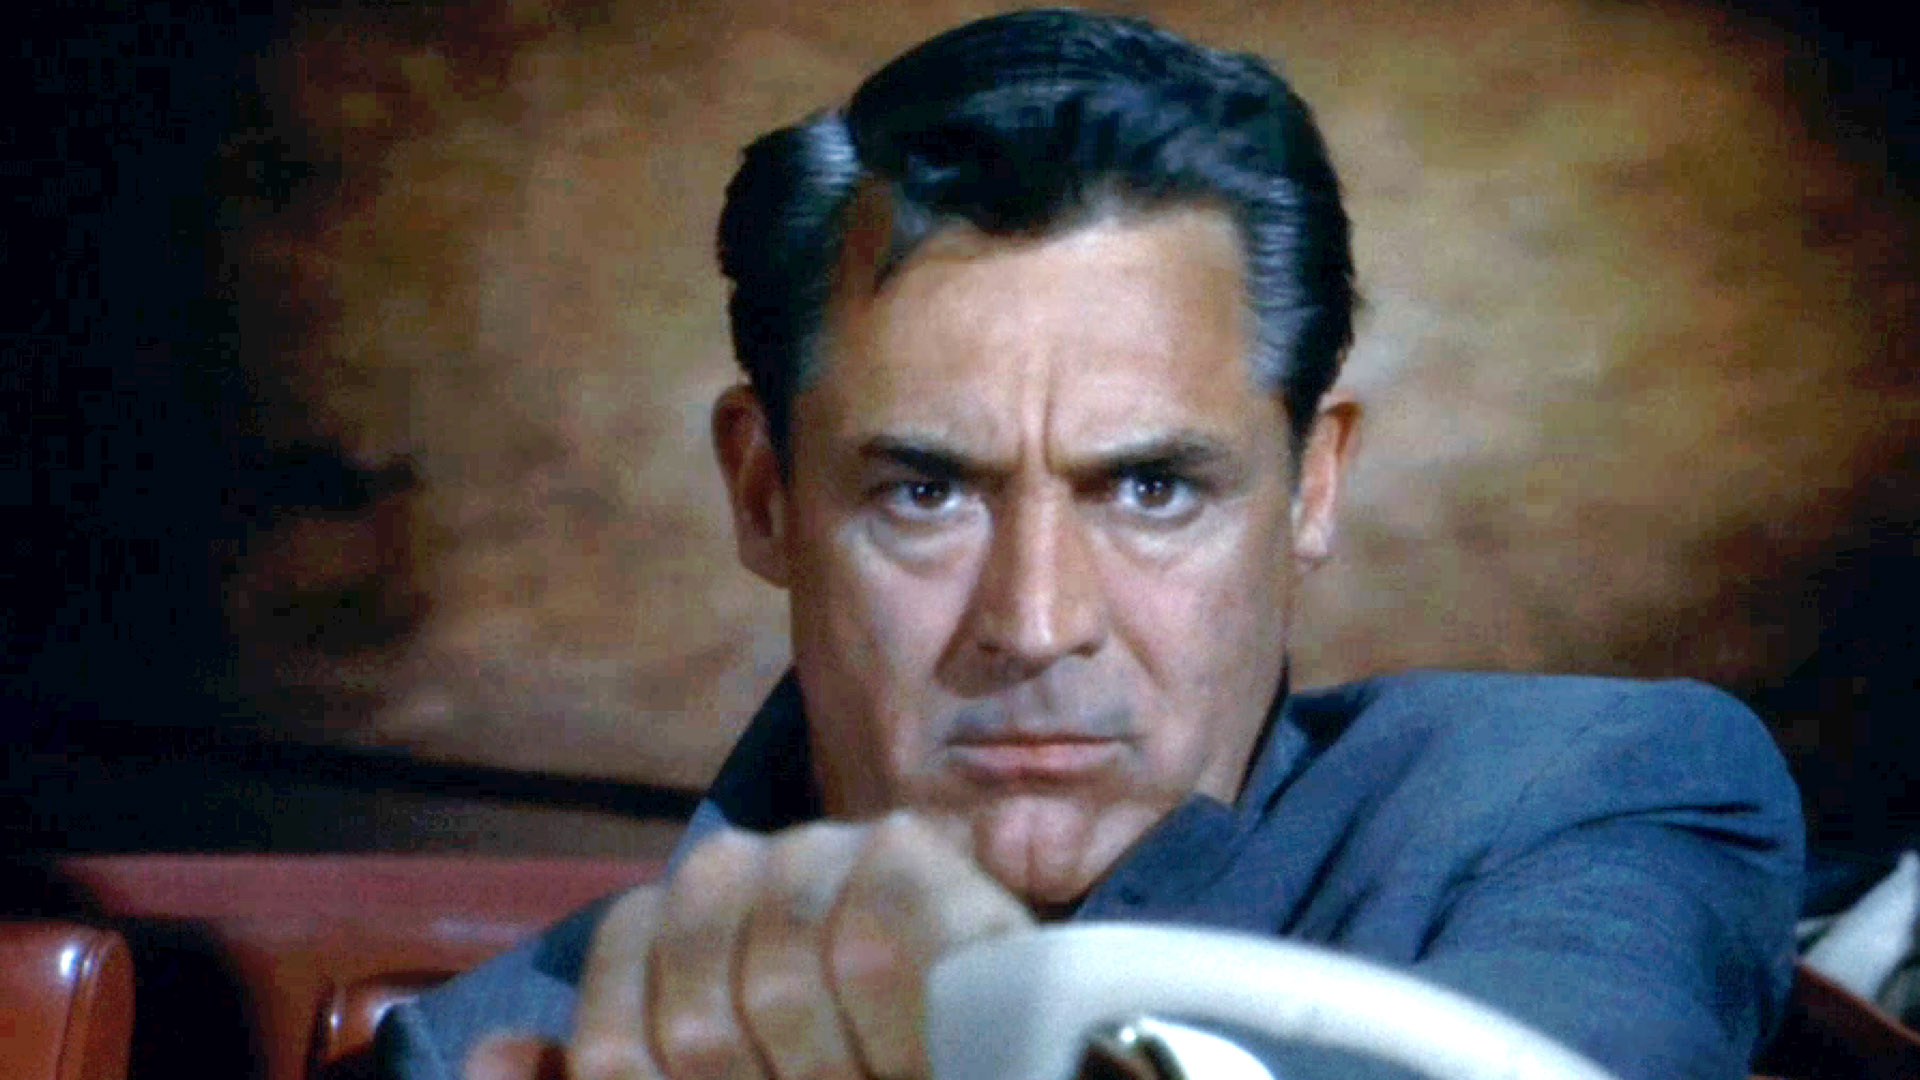 North by Northwest (1959) Presented by TCM